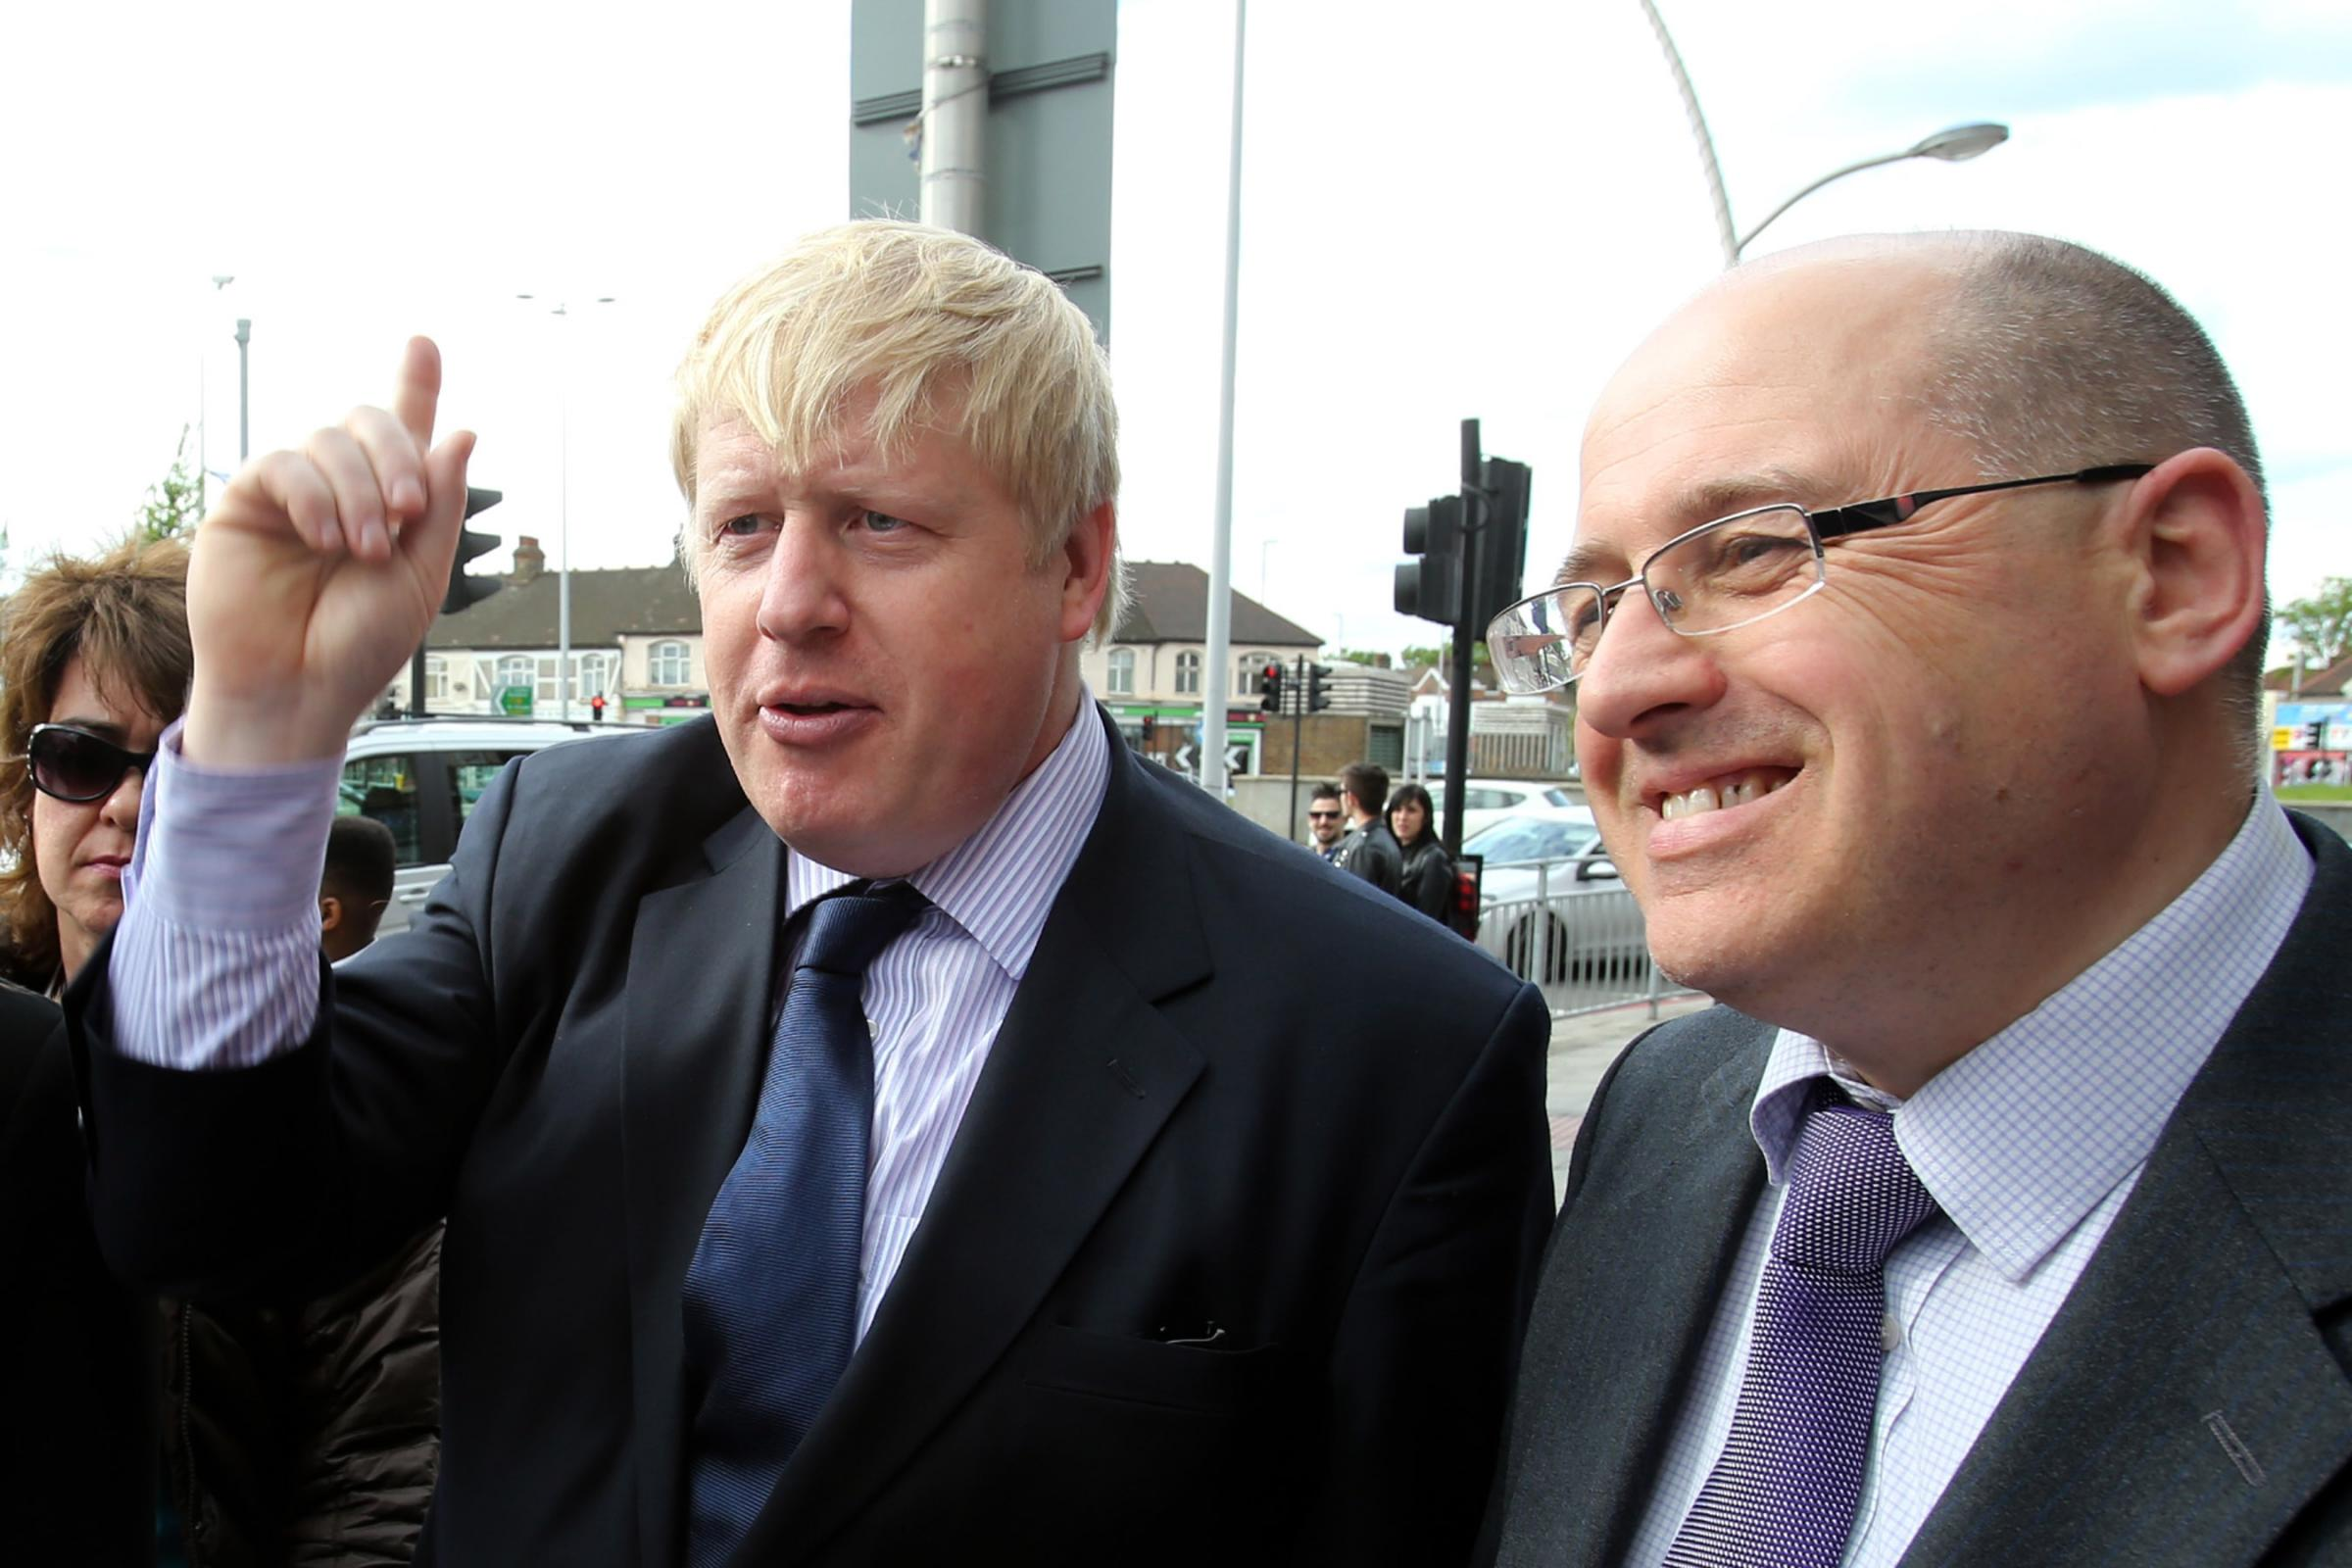 Boris Johnson launches Conservative's local election campaign